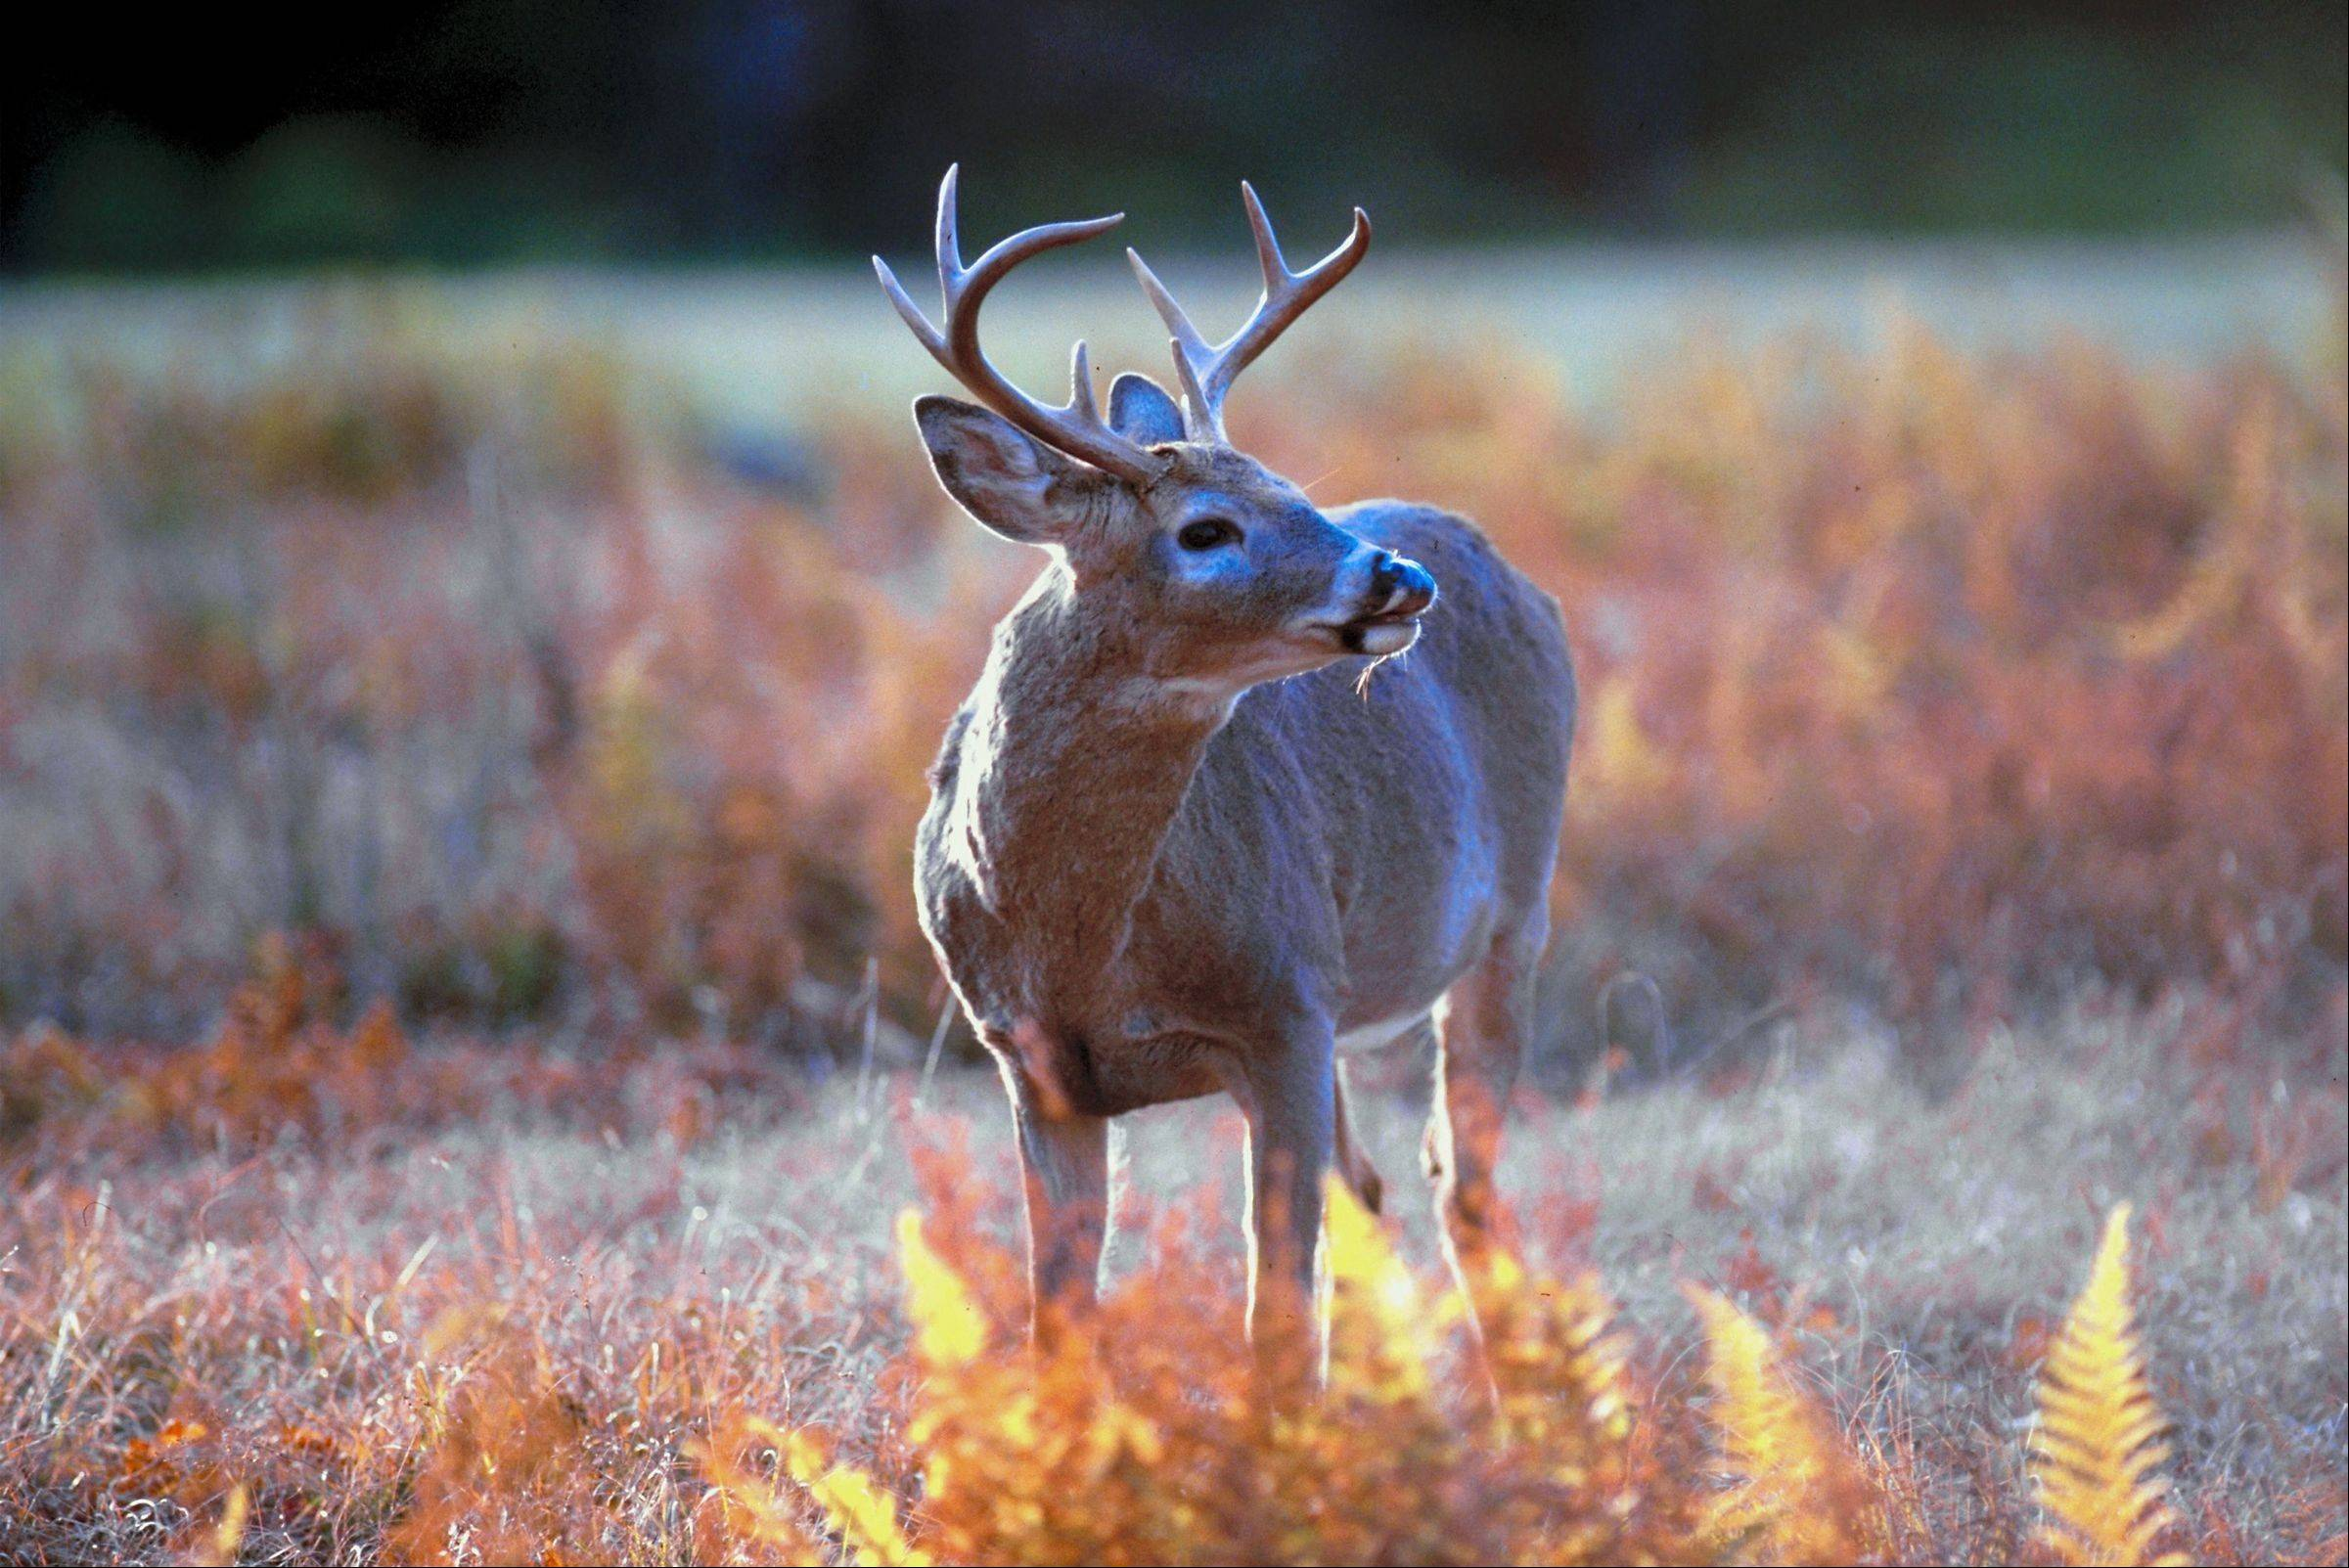 Bow hunters will have expanded territory this fall in the Kane County forest preserves, but deer fans are not happy about where the expansion will occur.